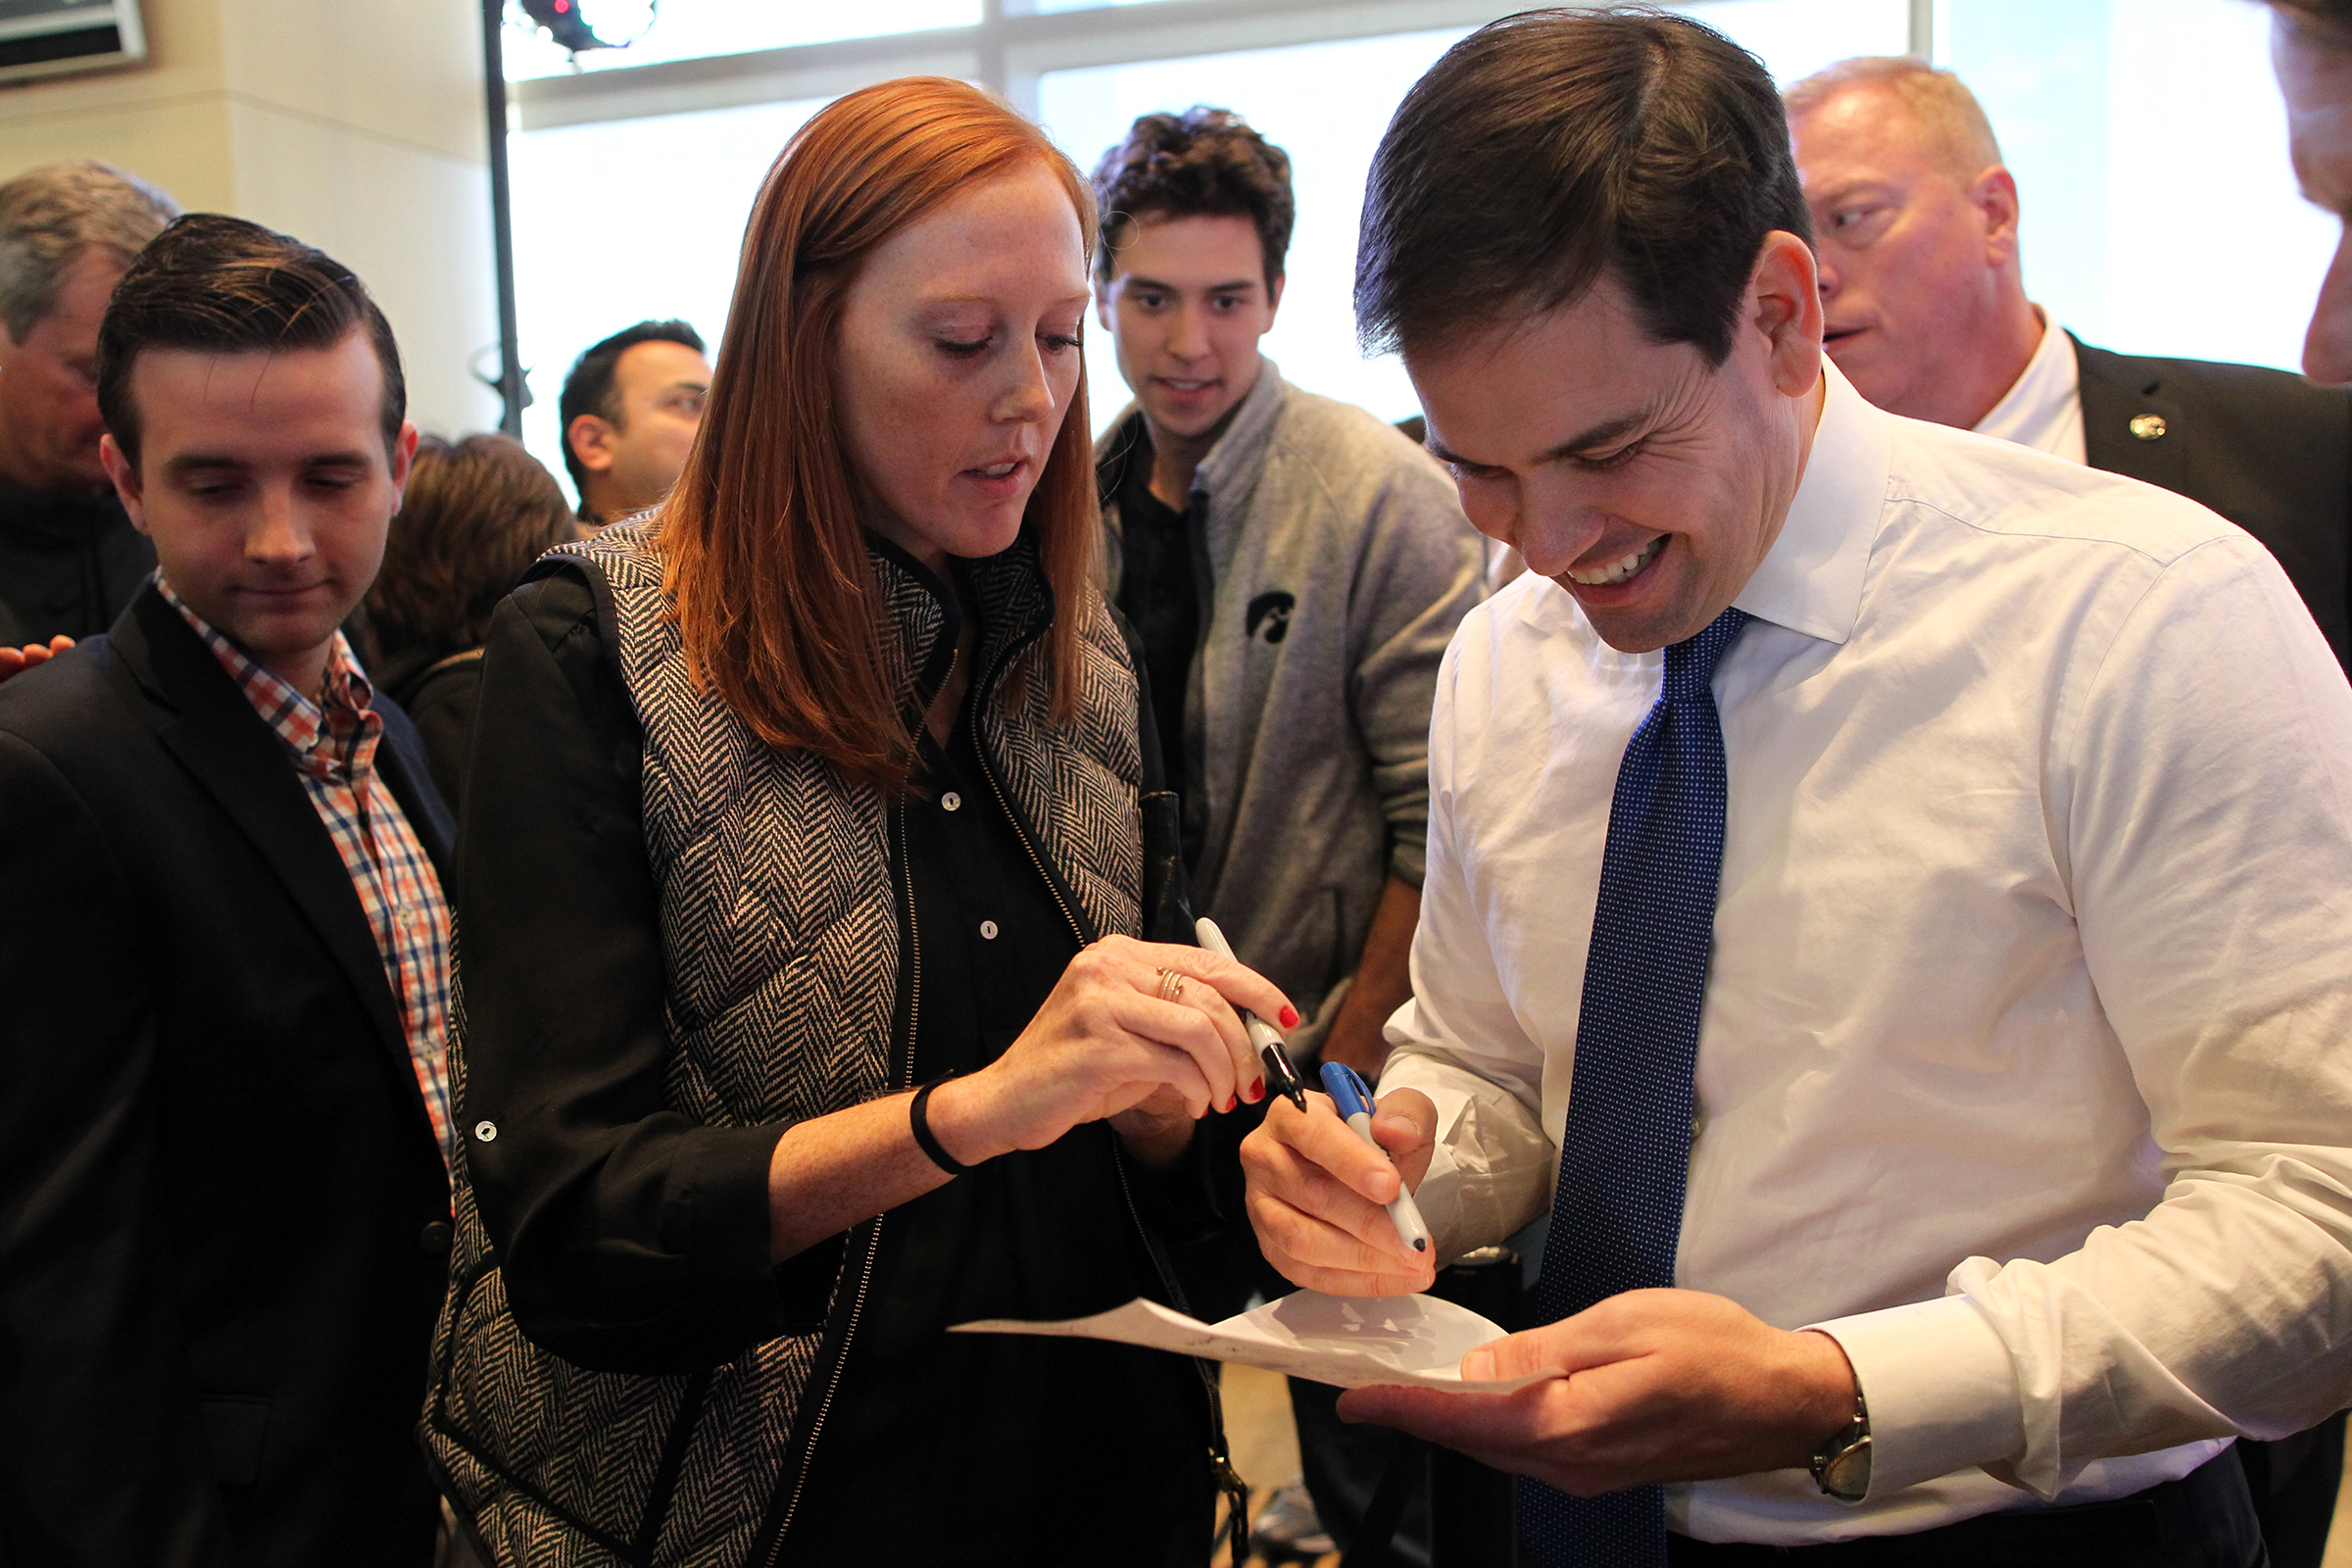 UI graduate student Josie Rudolphi asks Republican presidential candidate Marco Rubio to sign a permission slip to get her out of class following his speech at Kinnick Stadium.